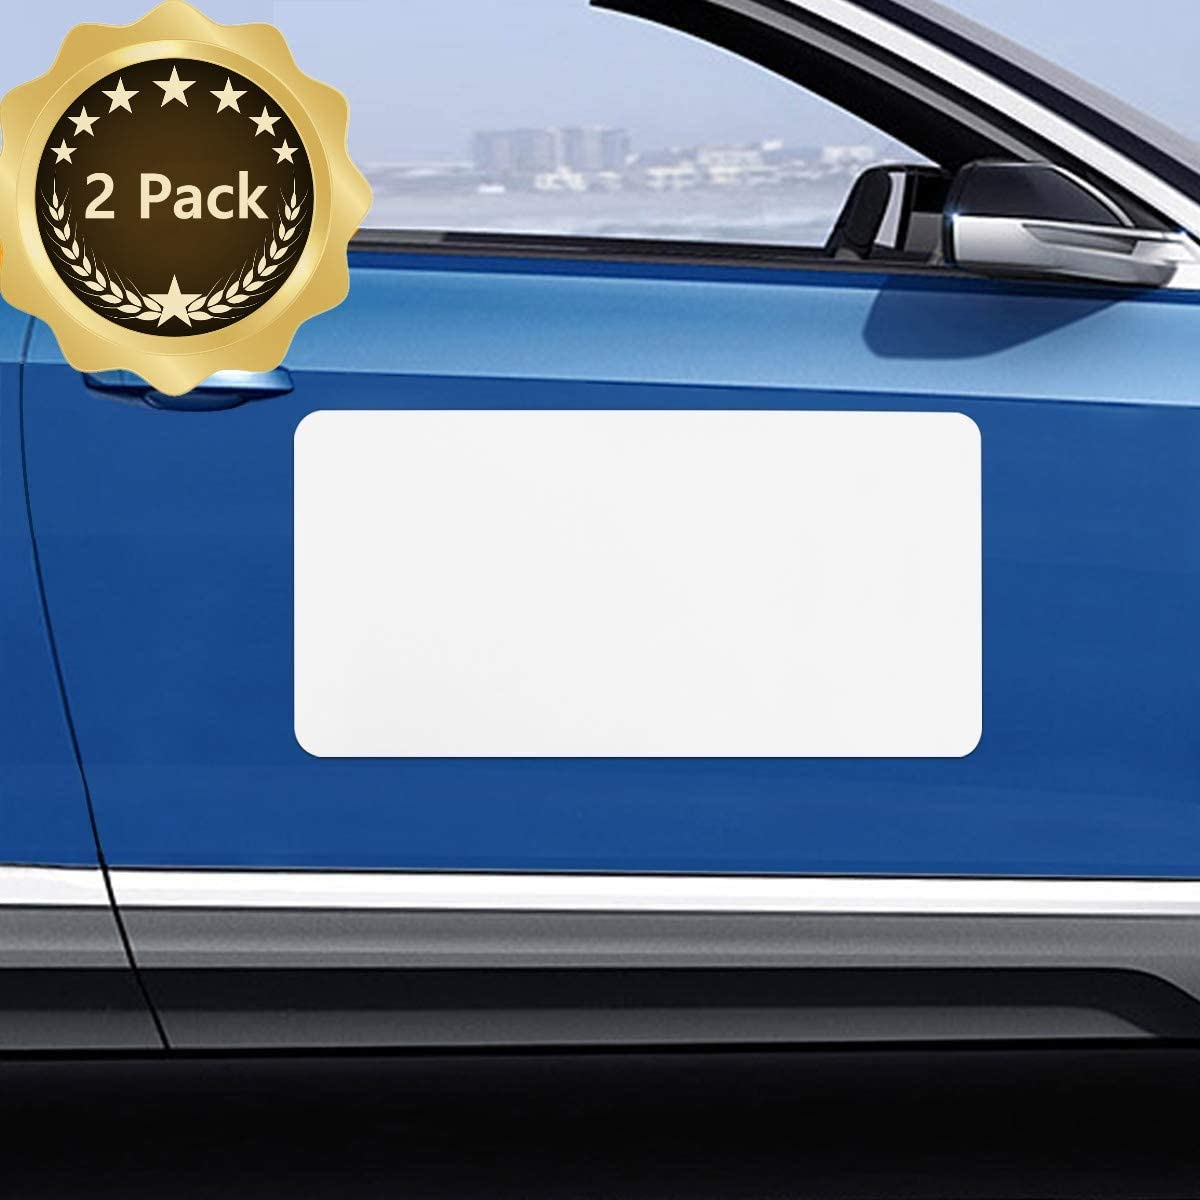 Blank Magnet for Car 2 Pack, Magnetic Sign for Vehicles, Business Signs for Car Doors, Magnetic Sheets to Cover Company Logo, Advertise Business, Prevent Scratches Rounded Corners